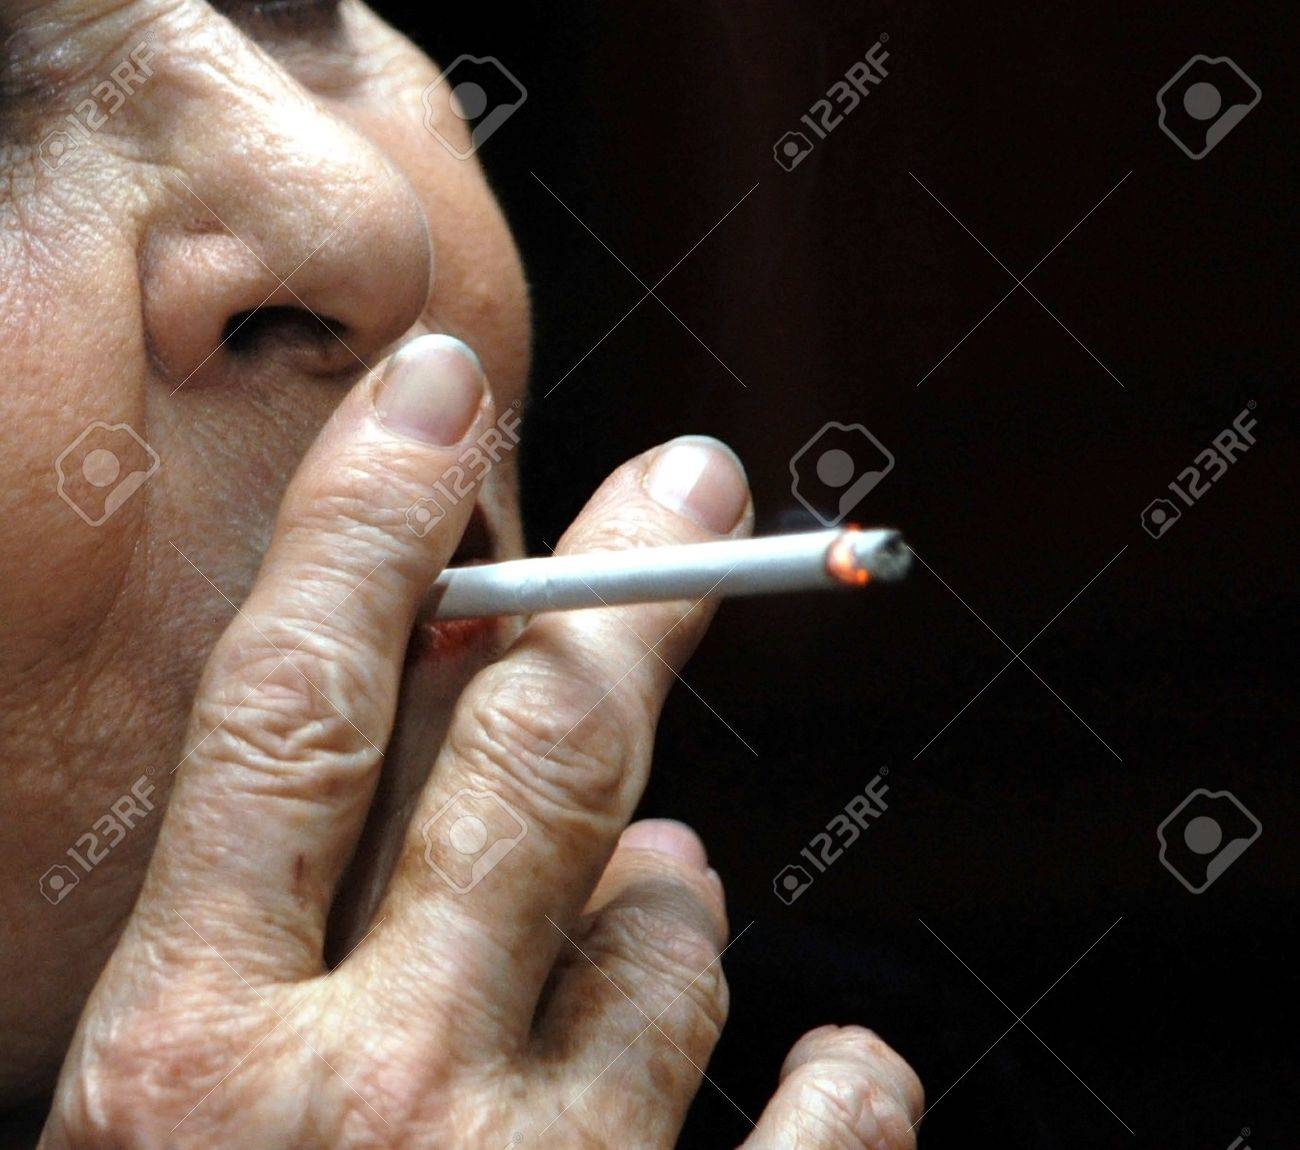 essay on ill effects of smoking